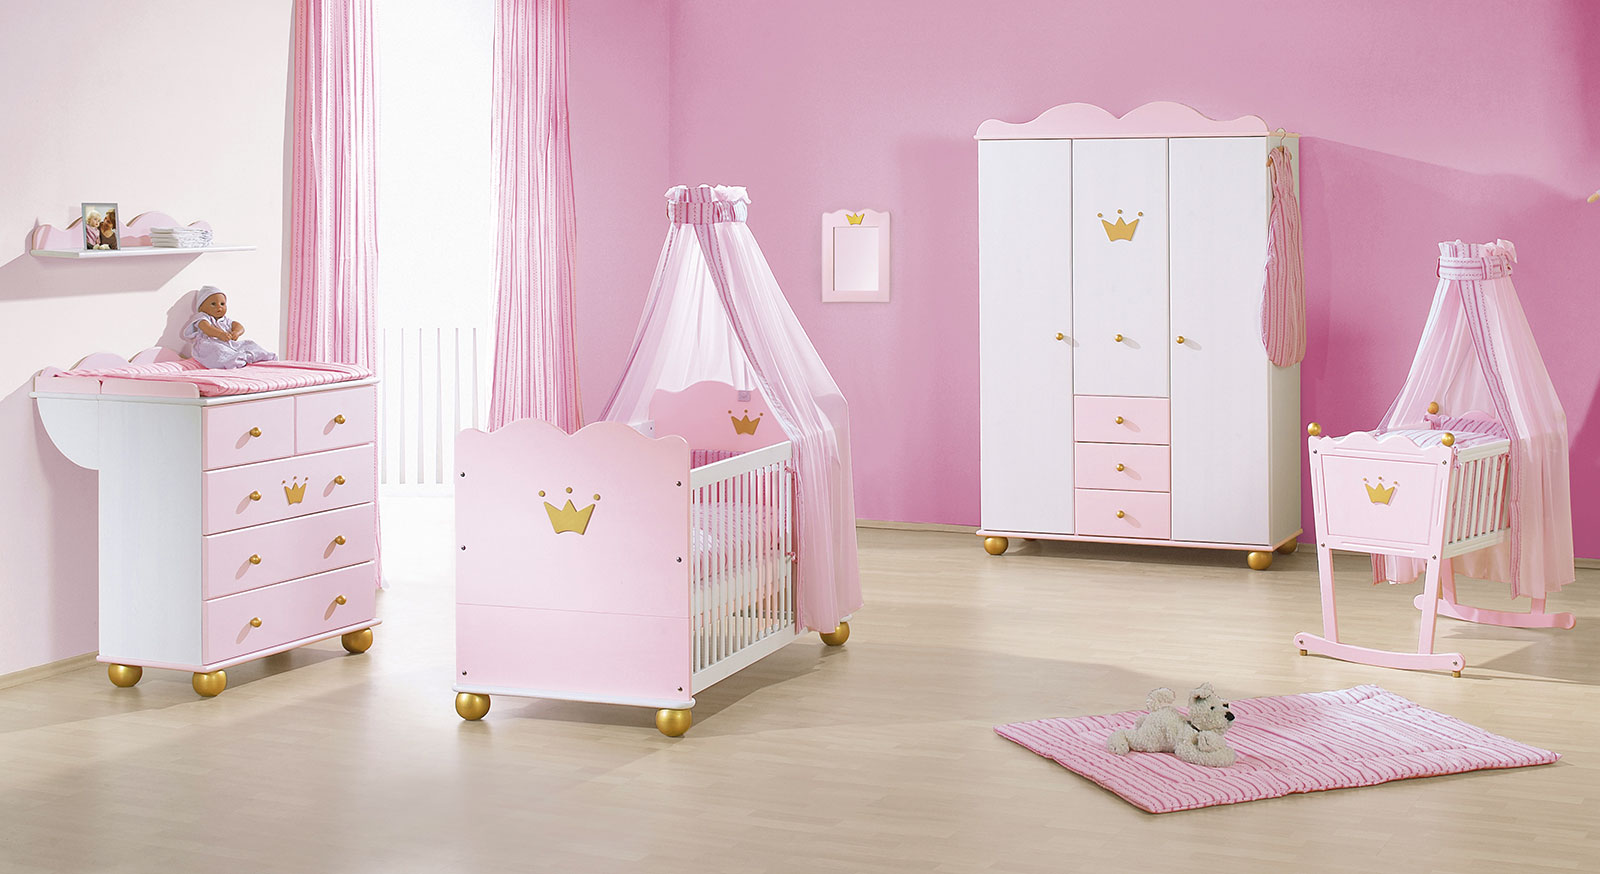 babyzimmer komplett g nstig kaufen. Black Bedroom Furniture Sets. Home Design Ideas